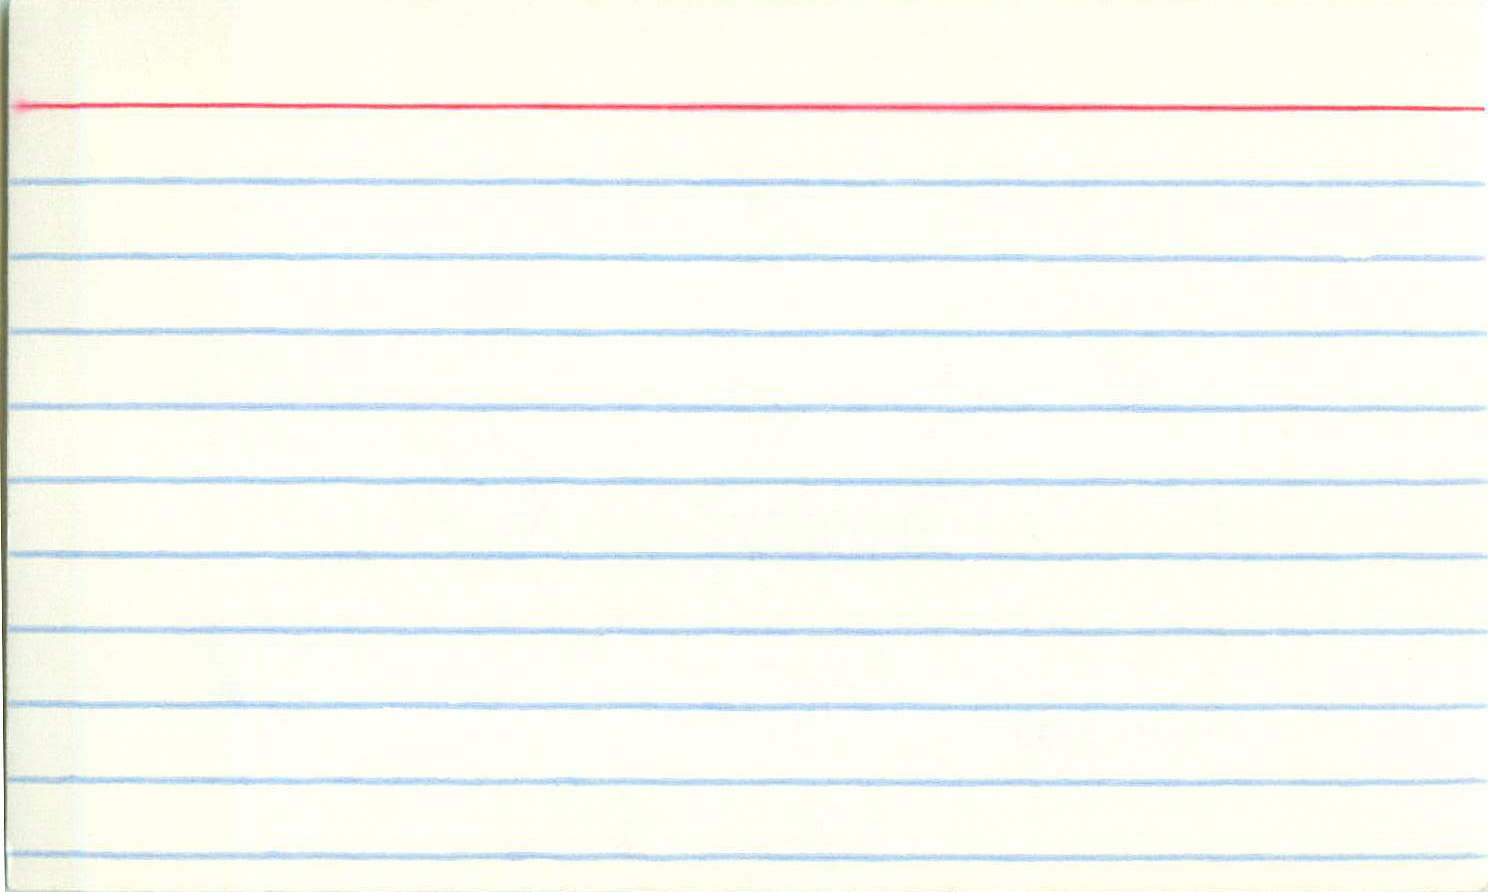 blank index card